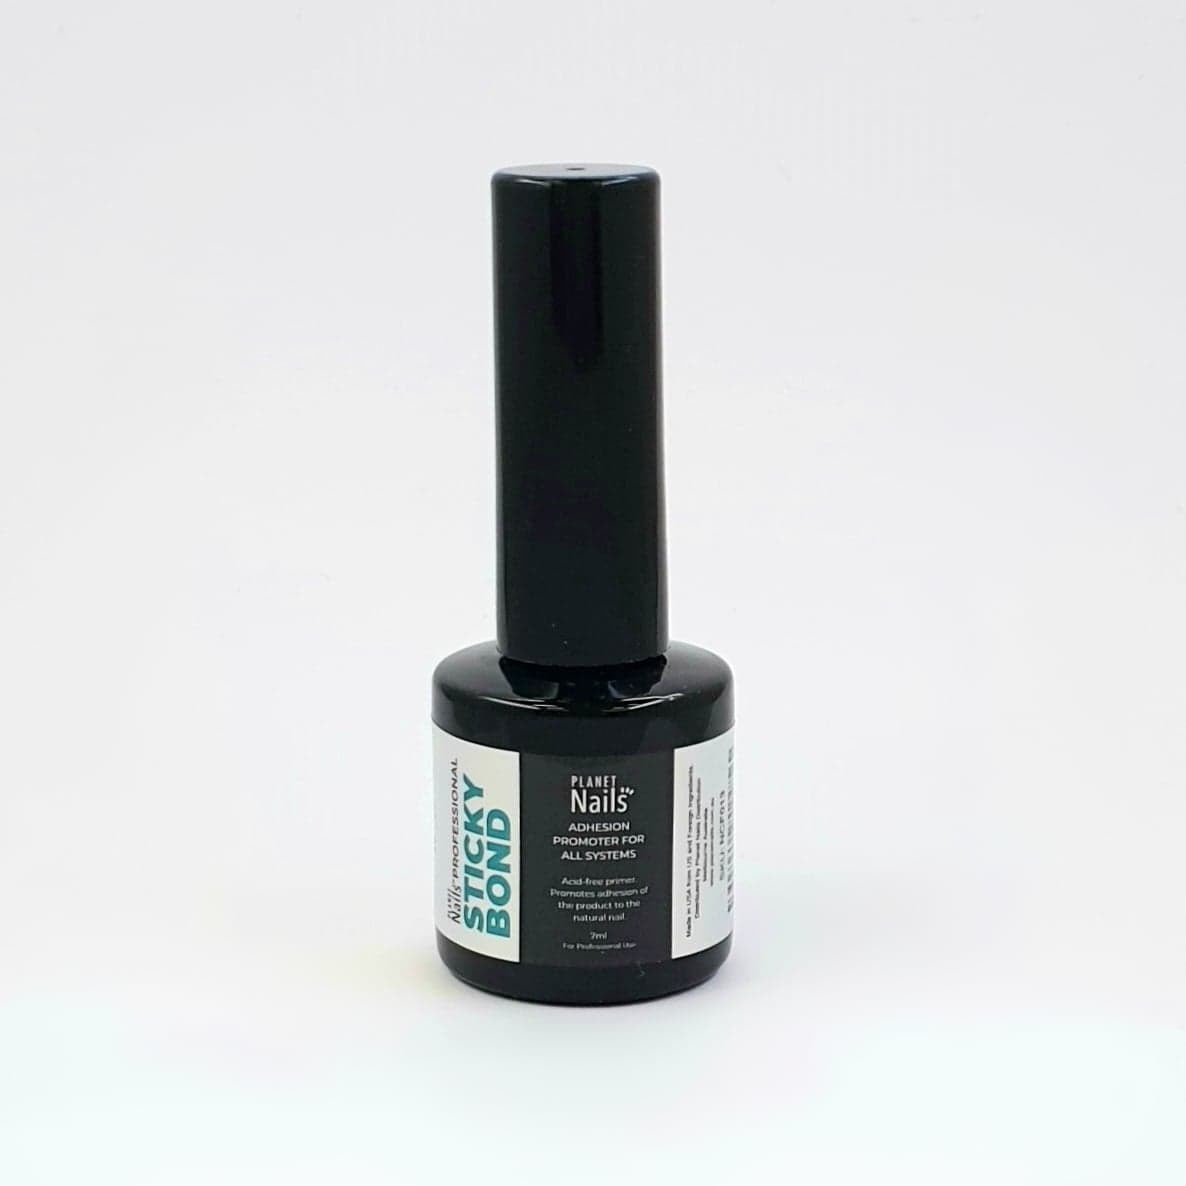 Planet Vogue 7MI Sticky Bond (Acid Free Primer)